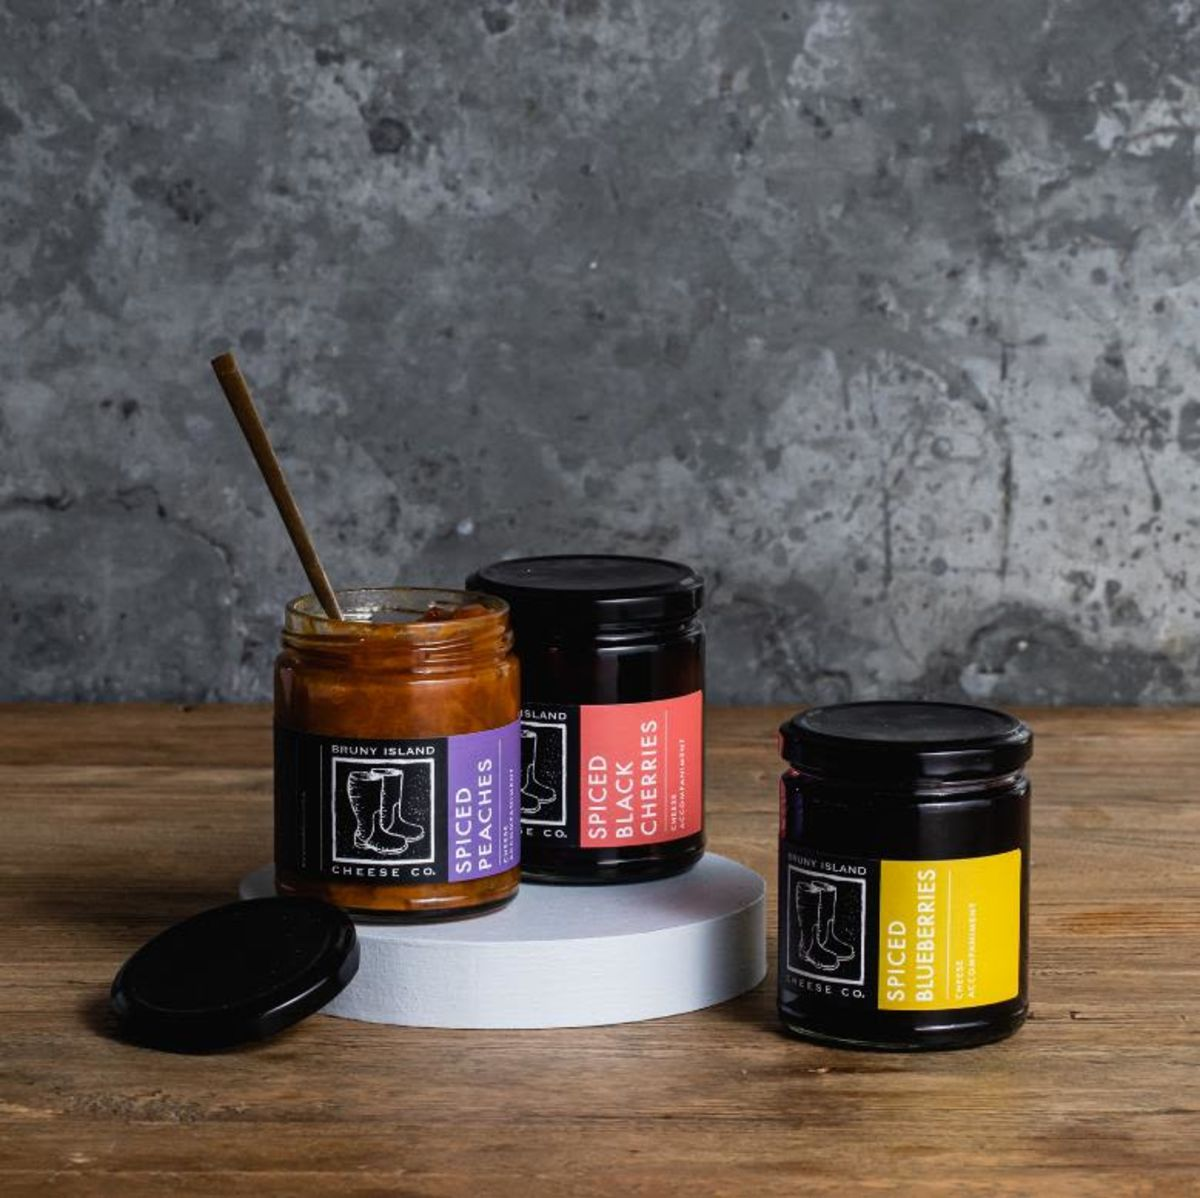 Bruny Island Cheese Co Spiced Fruits Trio